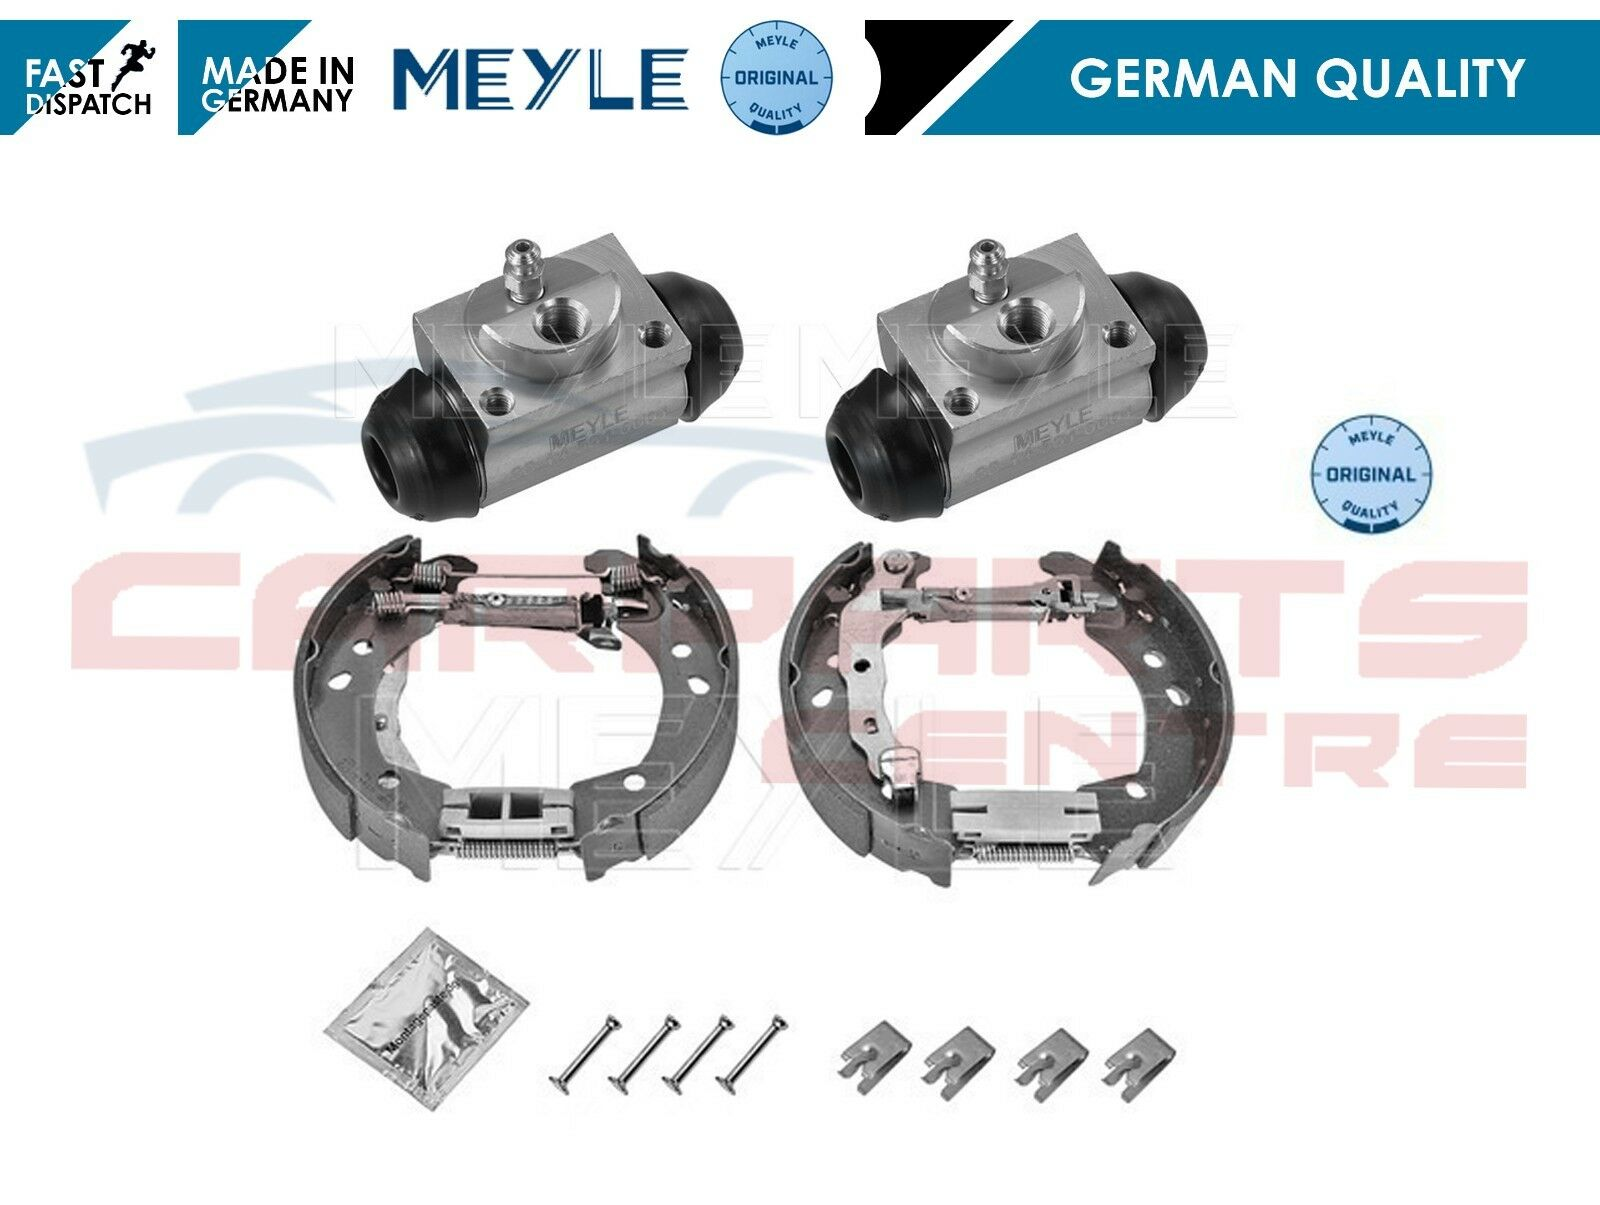 FOR NISSAN MICRA K12 1.0 1.2 1.4 1.5 DIESEL 1.6 2002-2010 REAR STUB AXLE